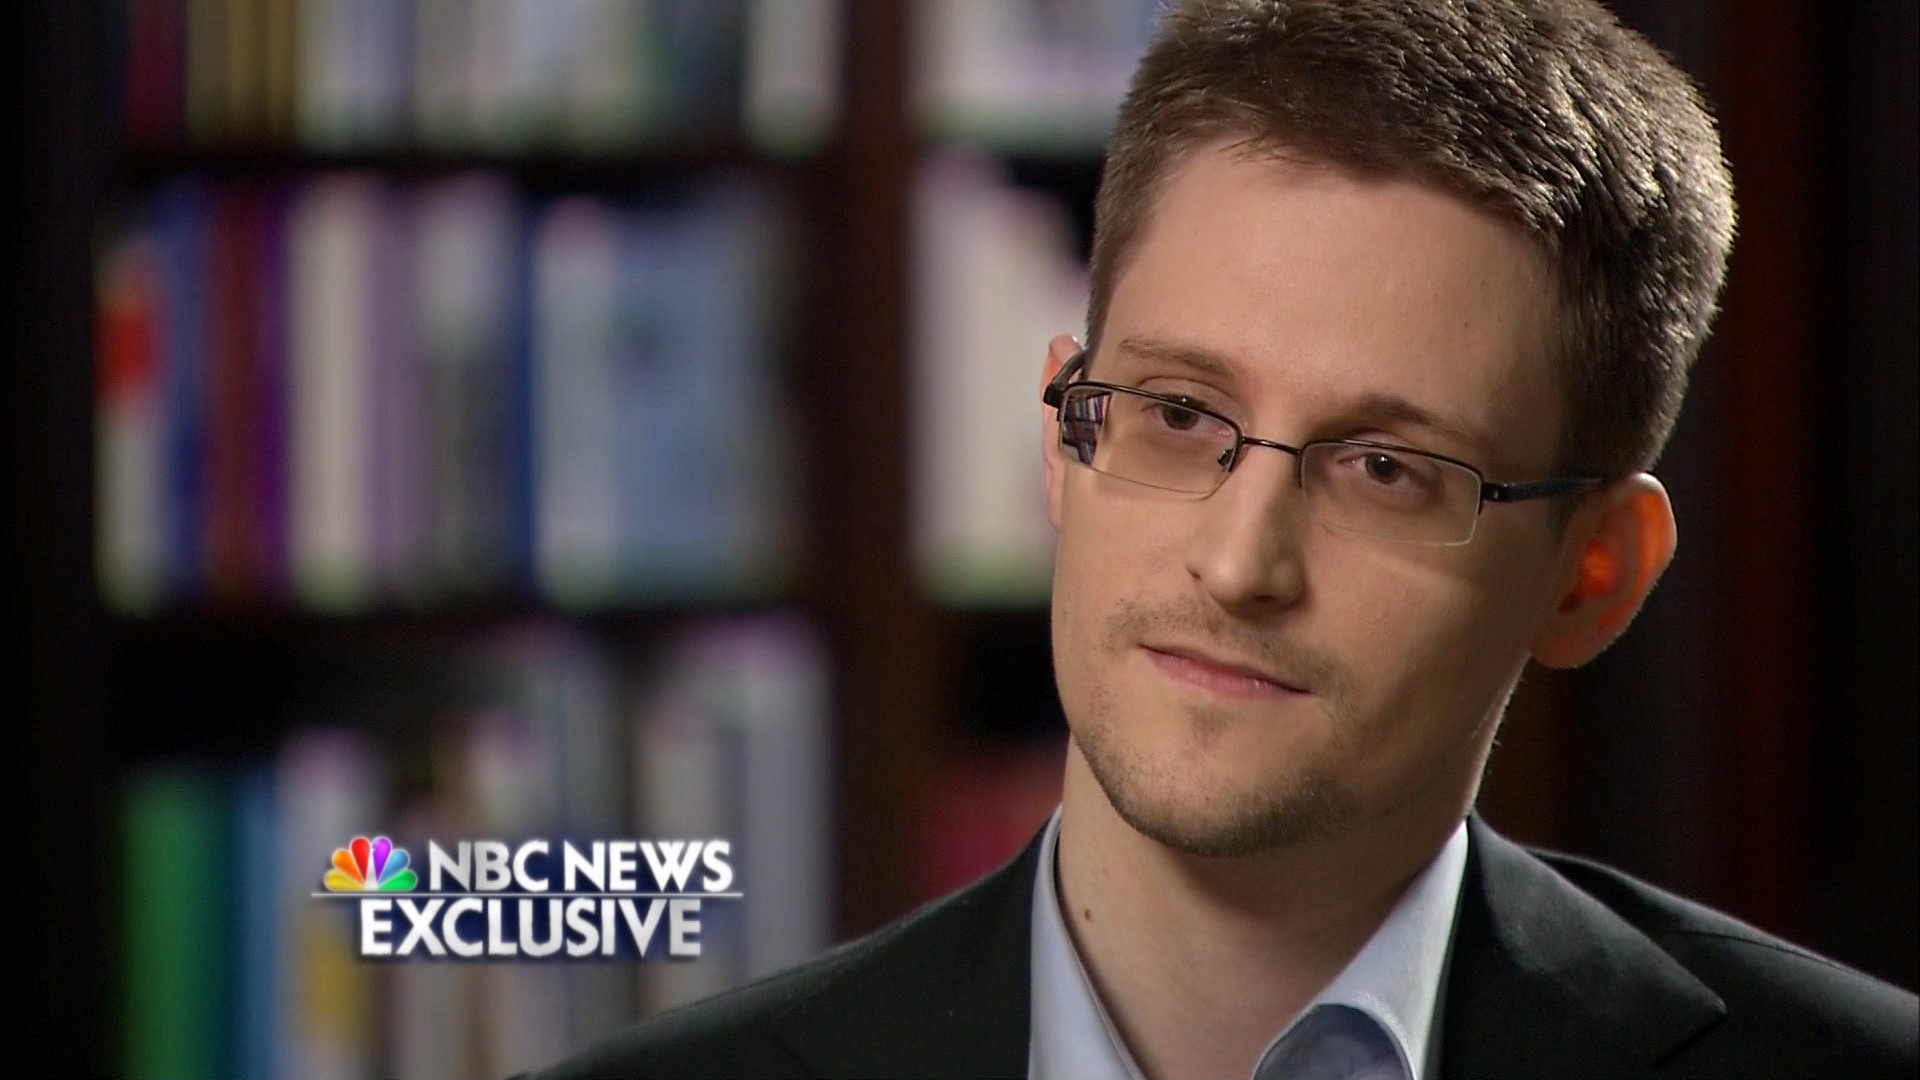 insight on edward snowden Instant insight wikileaks dump exposes the cia's commercial links premium tradecraft, diplomacy and alliances will all oliver stone's film about edward snowden is expertly made but somewhat uncritical thursday, 8 december, 2016 save.